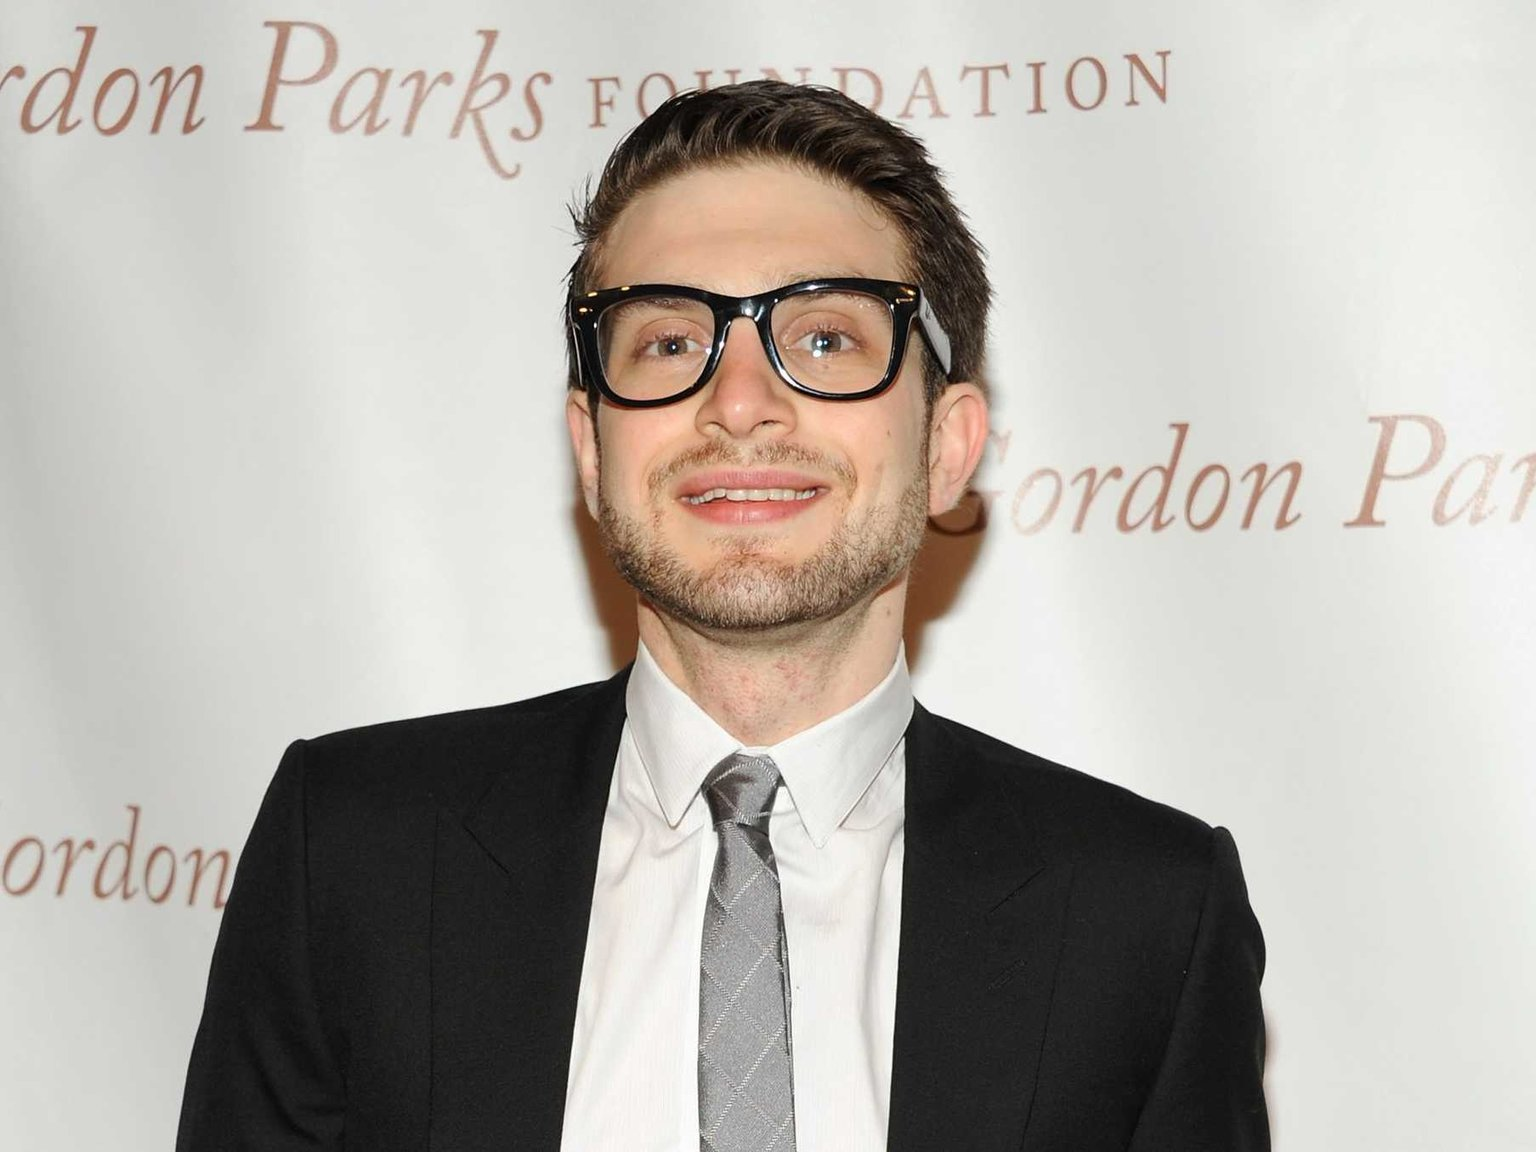 Alexander Soros, the son of billionaire investor George Soros, gave $650,000 to Democratic candidates and committees in 2017, according to Federal Election Commission filings. The young financier, much like his father, is on his way to becoming one of the large power players in the Democratic Party. Soros donated over $200,000 to the Democratic Senatorial Campaign Committee …